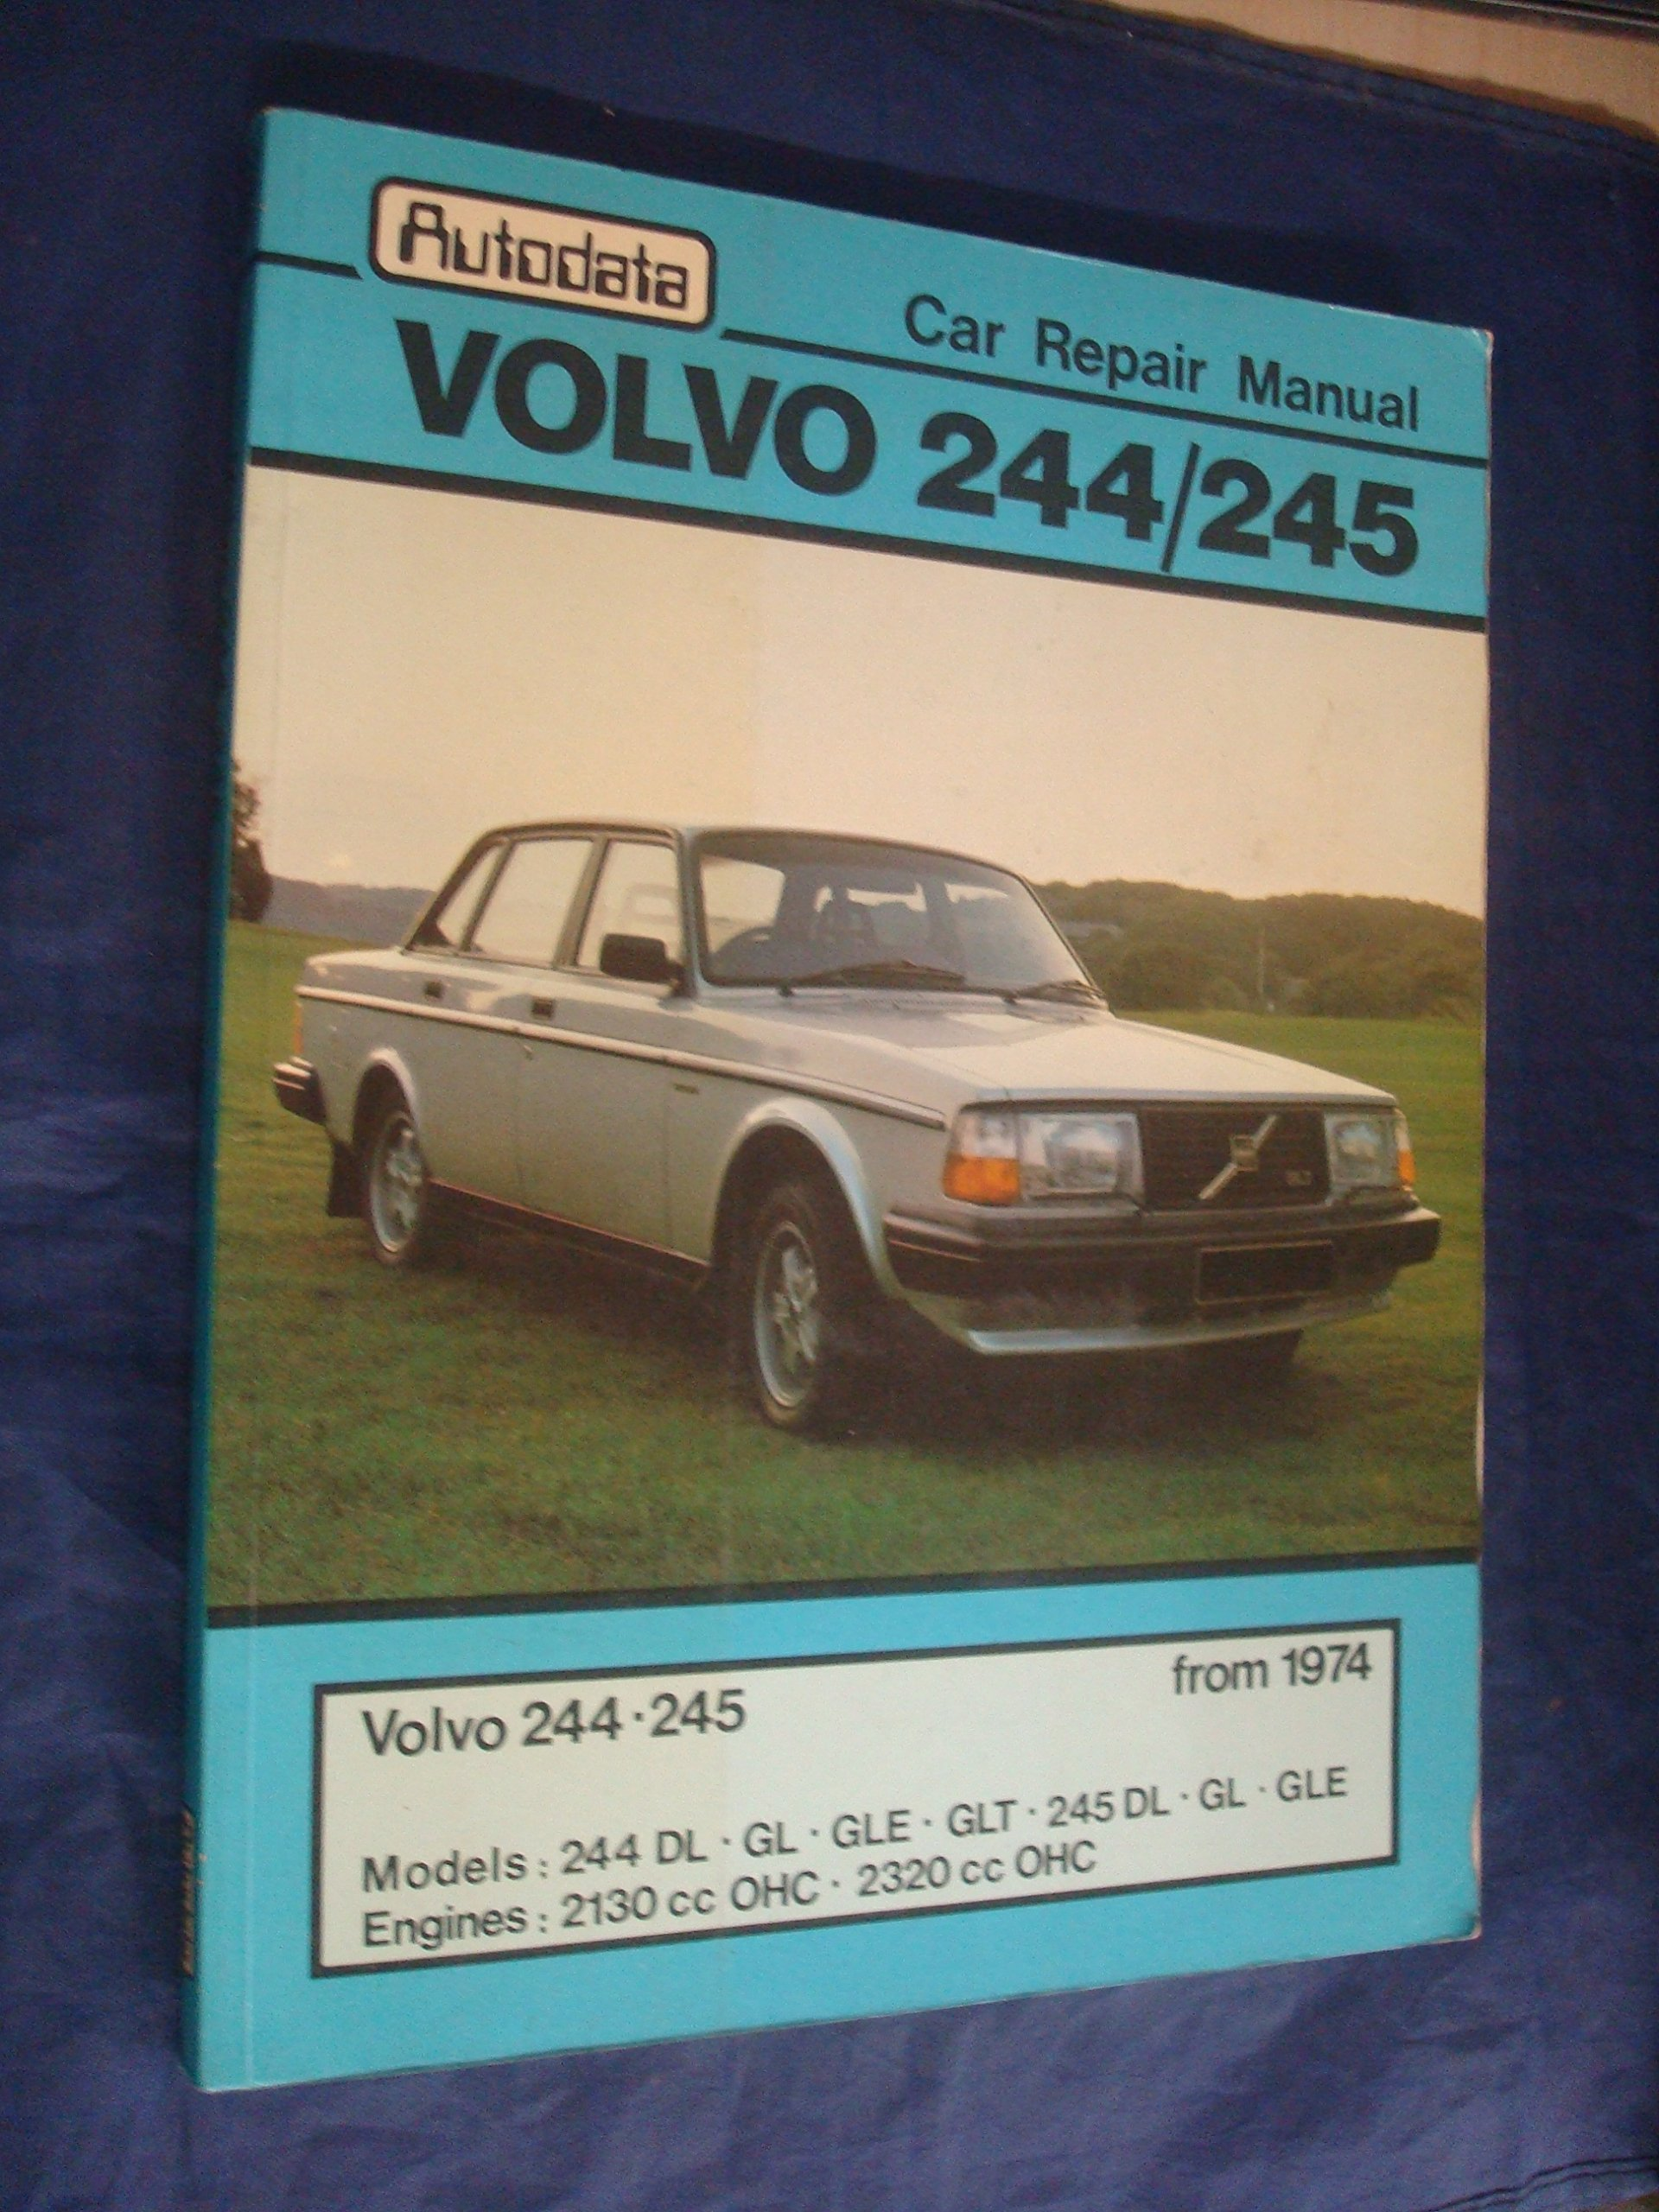 Volvo 244/245 from 1974 Autodata Car Repair Manual: 9780856663062:  Amazon.com: Books